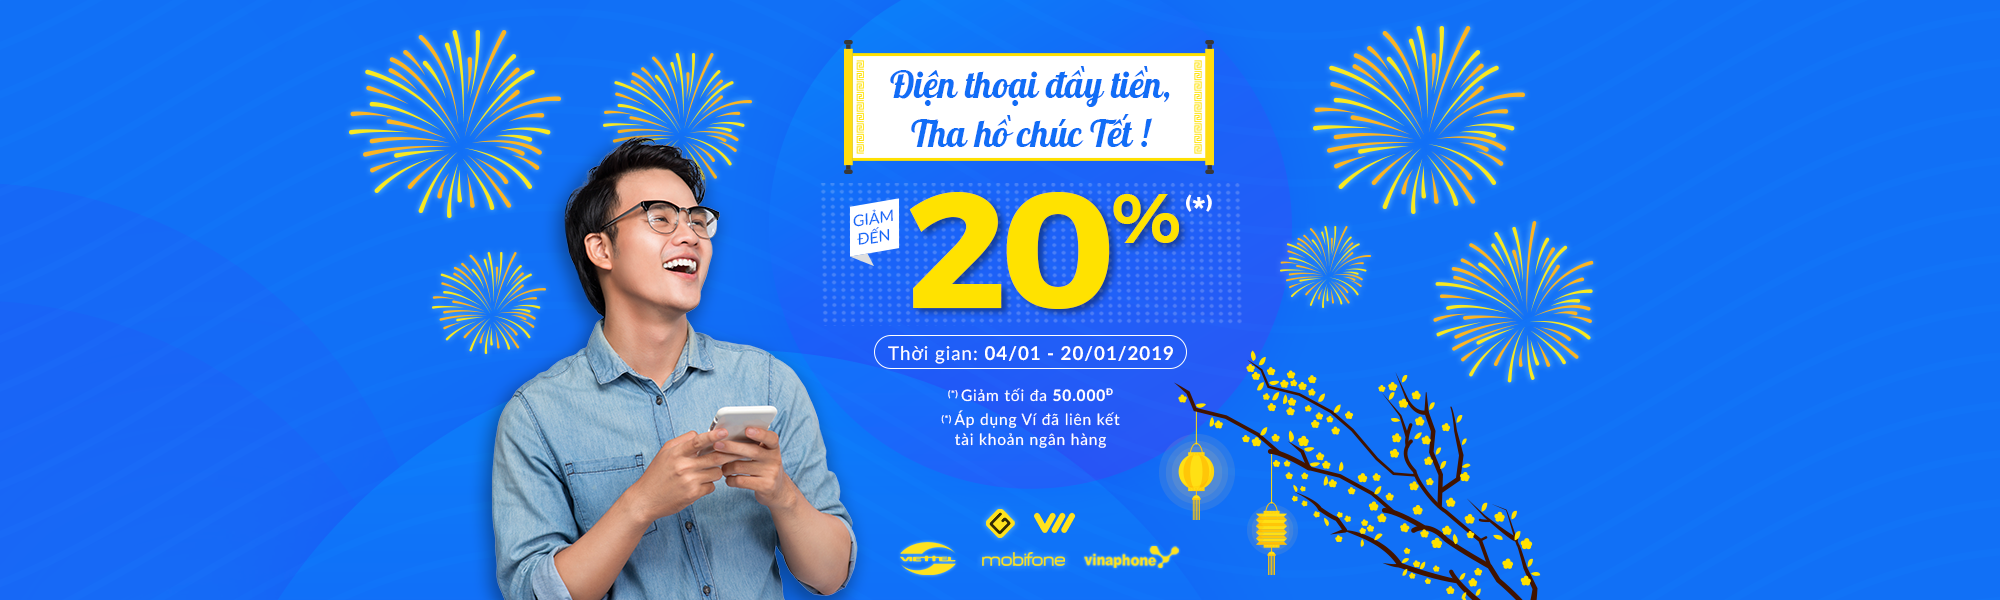 telco-promotion-jan-2019